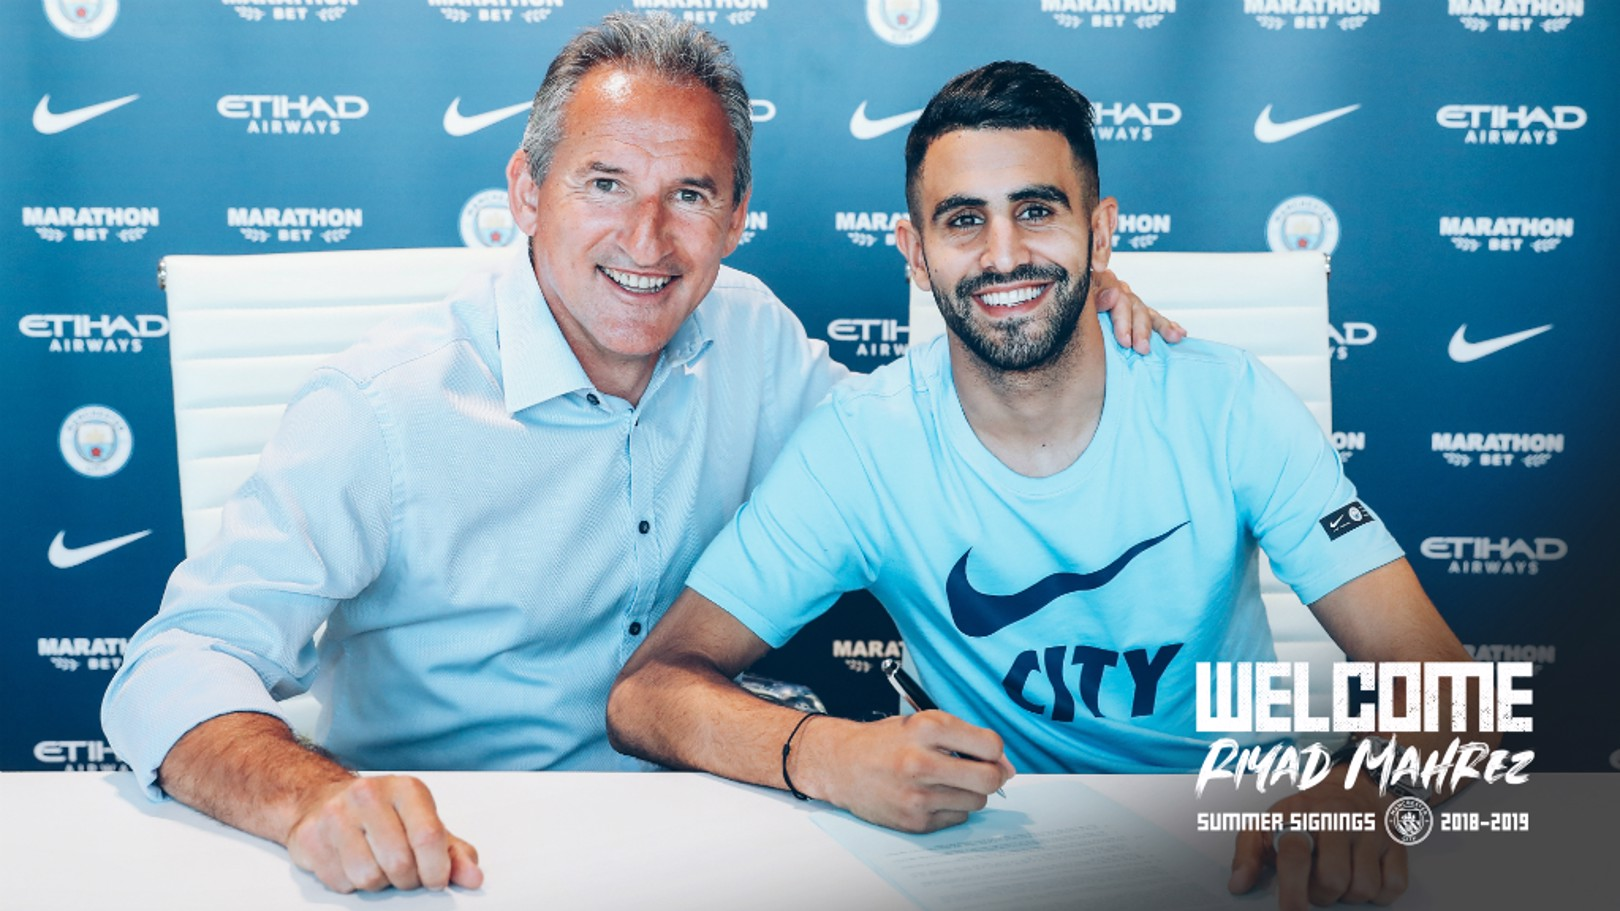 NEW BLUE: Riyad Mahrez puts pen to paper